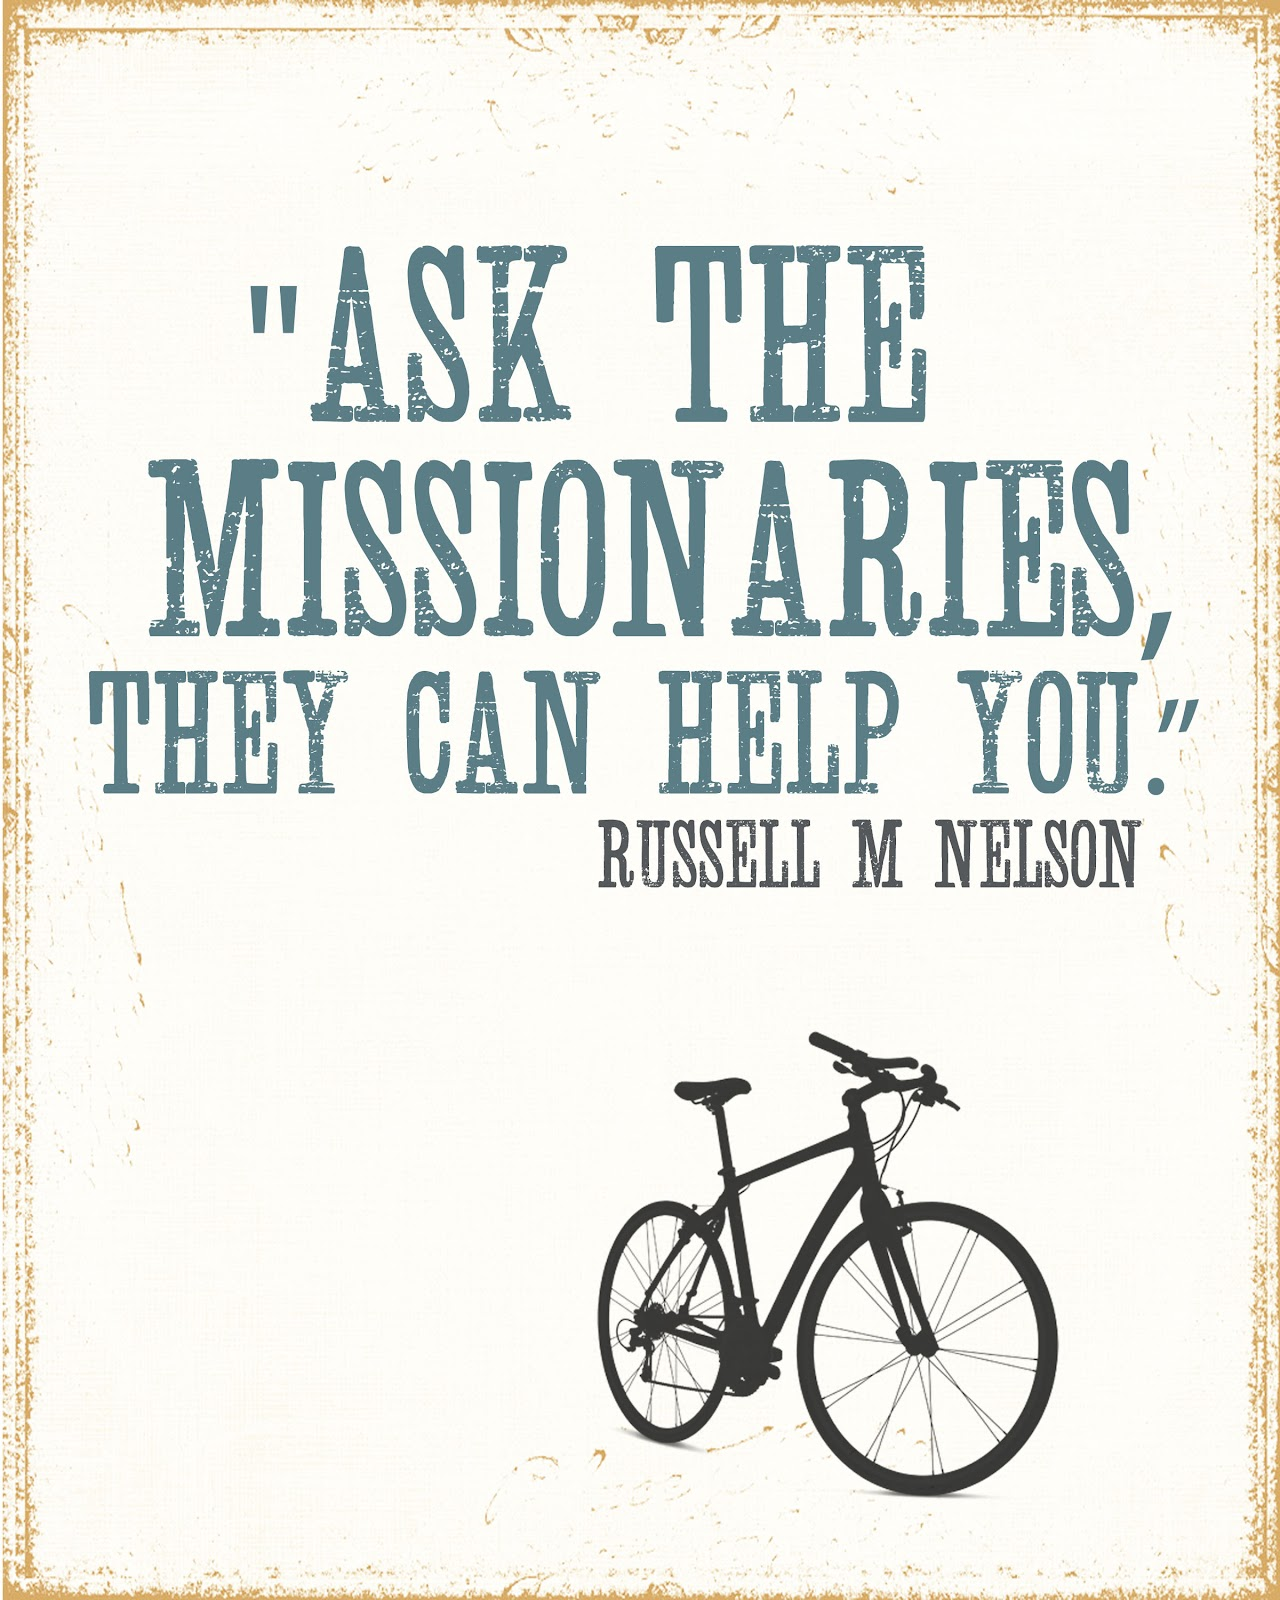 Talk to a missionary by clicking here!